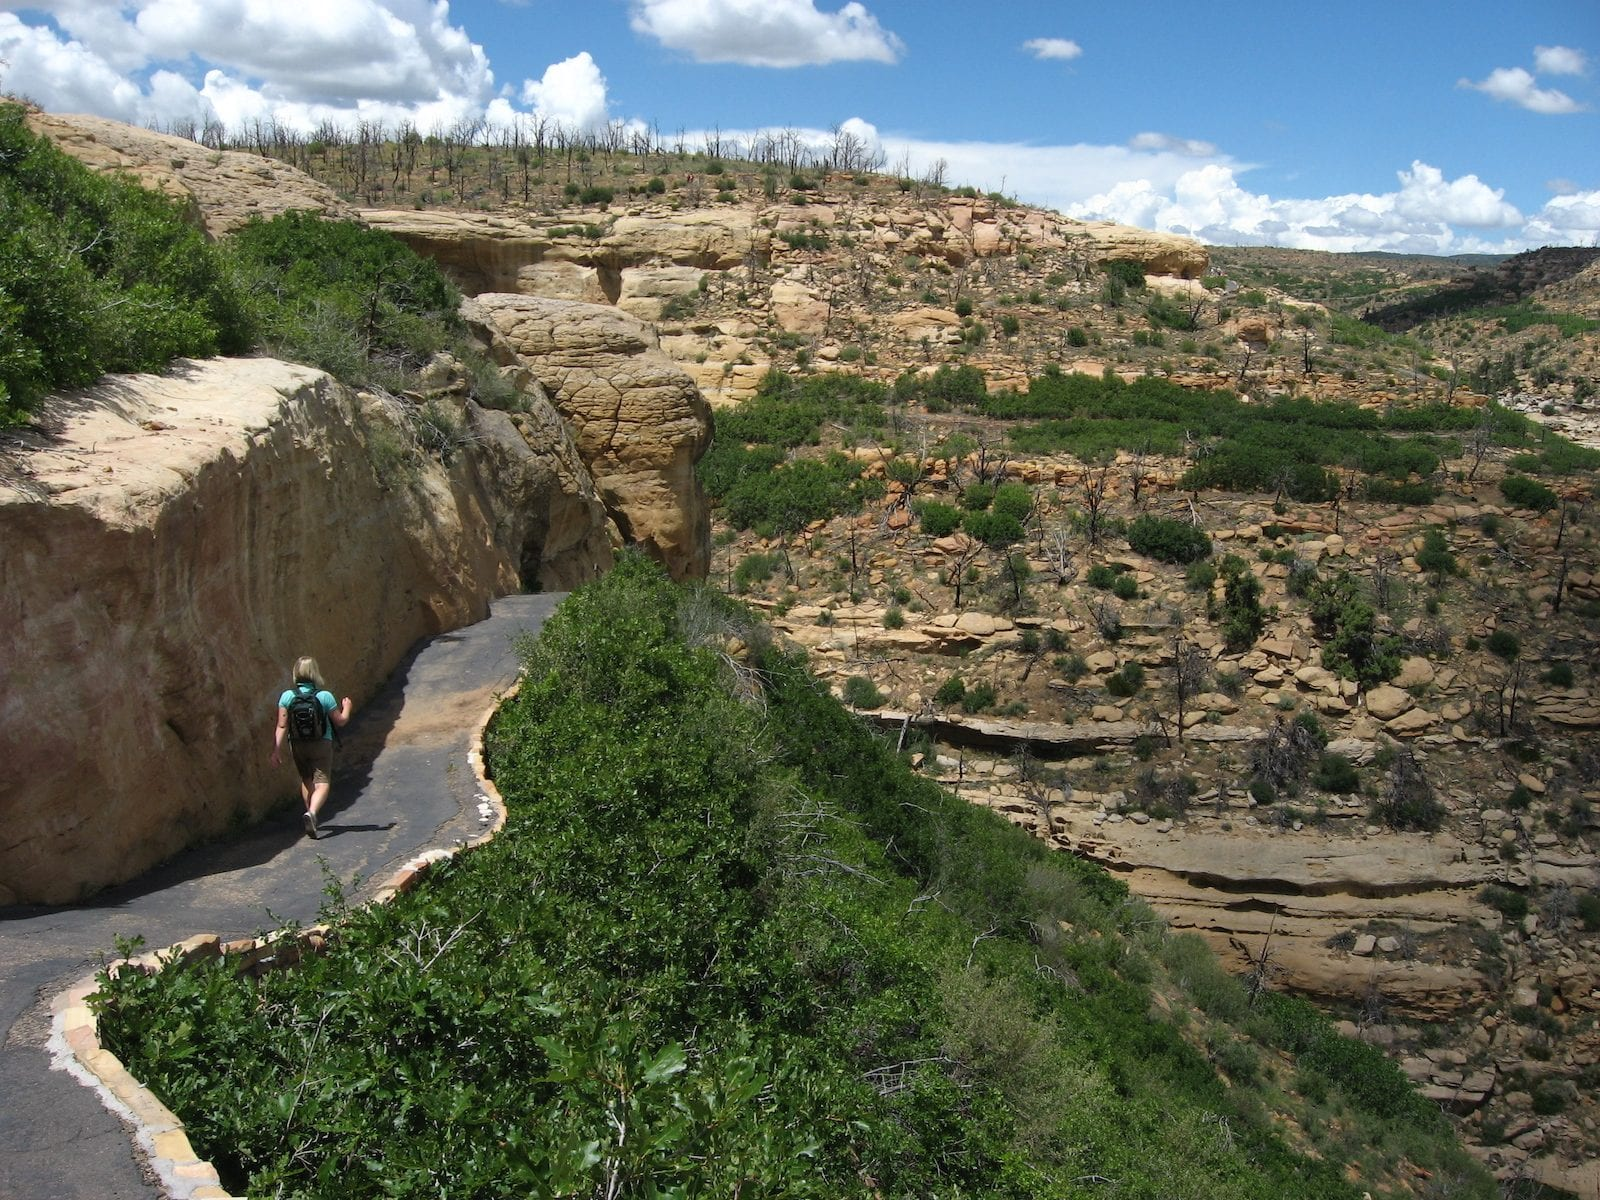 Hike to Step House, Wetherill Mesa, Mesa Verde National Park, Colorado